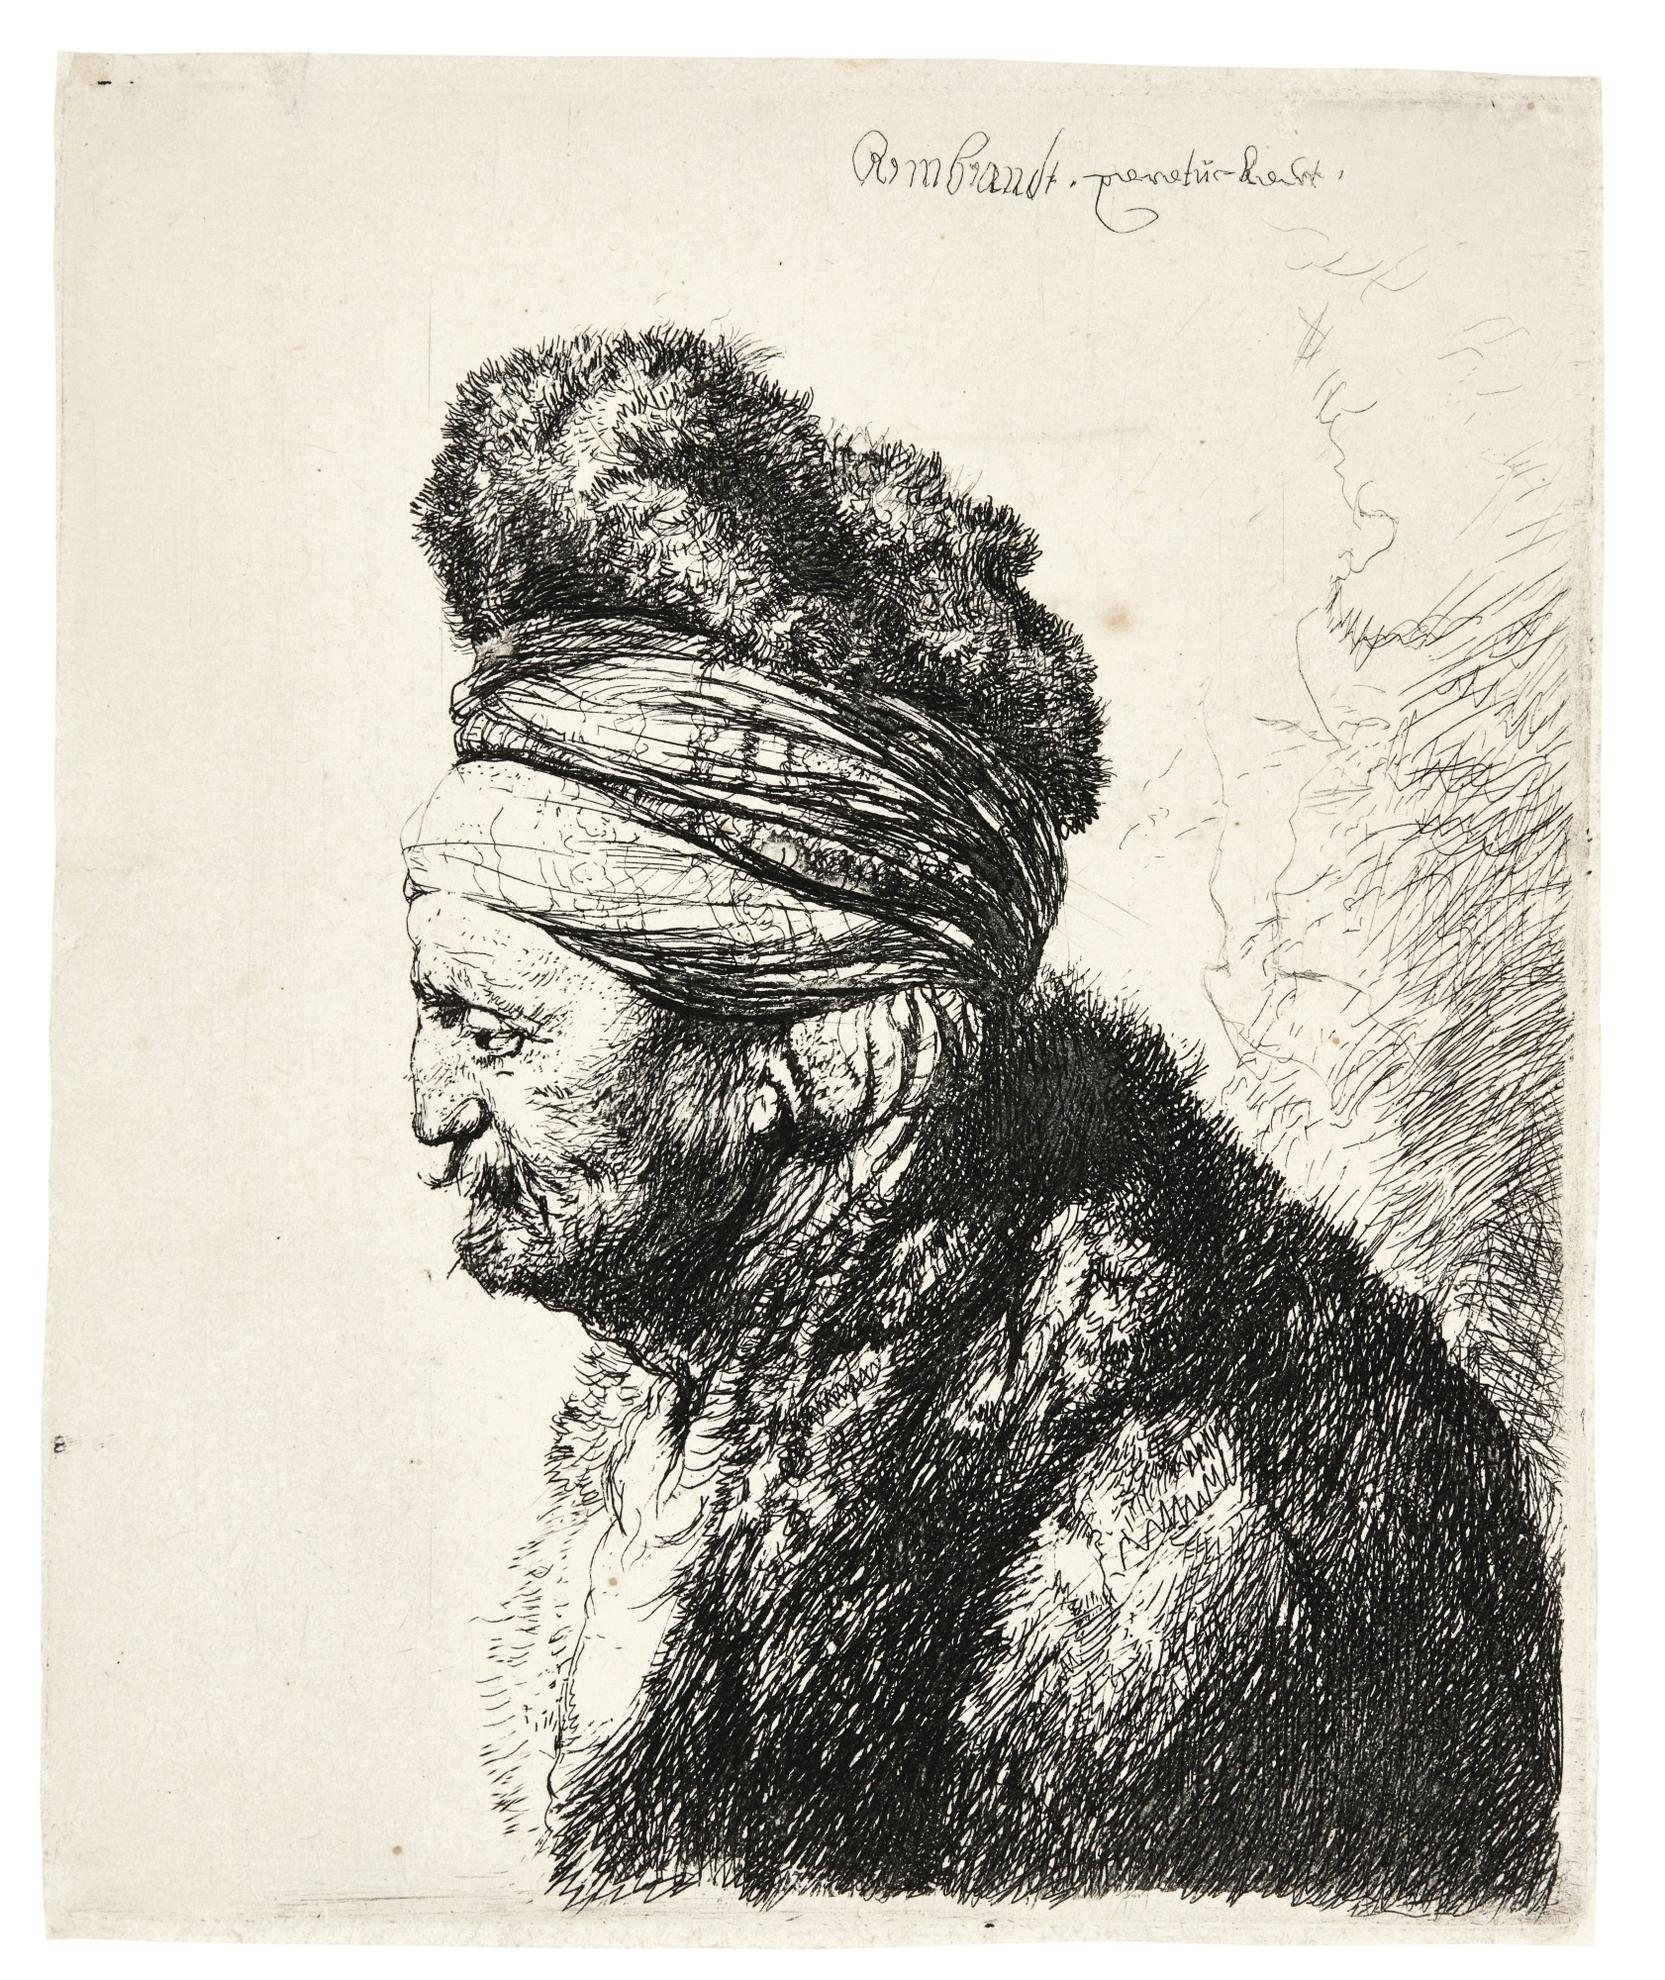 Rembrandt van Rijn-The Second Oriental Head (B., Holl. 287; New Holl. 150; H. 132)-1635